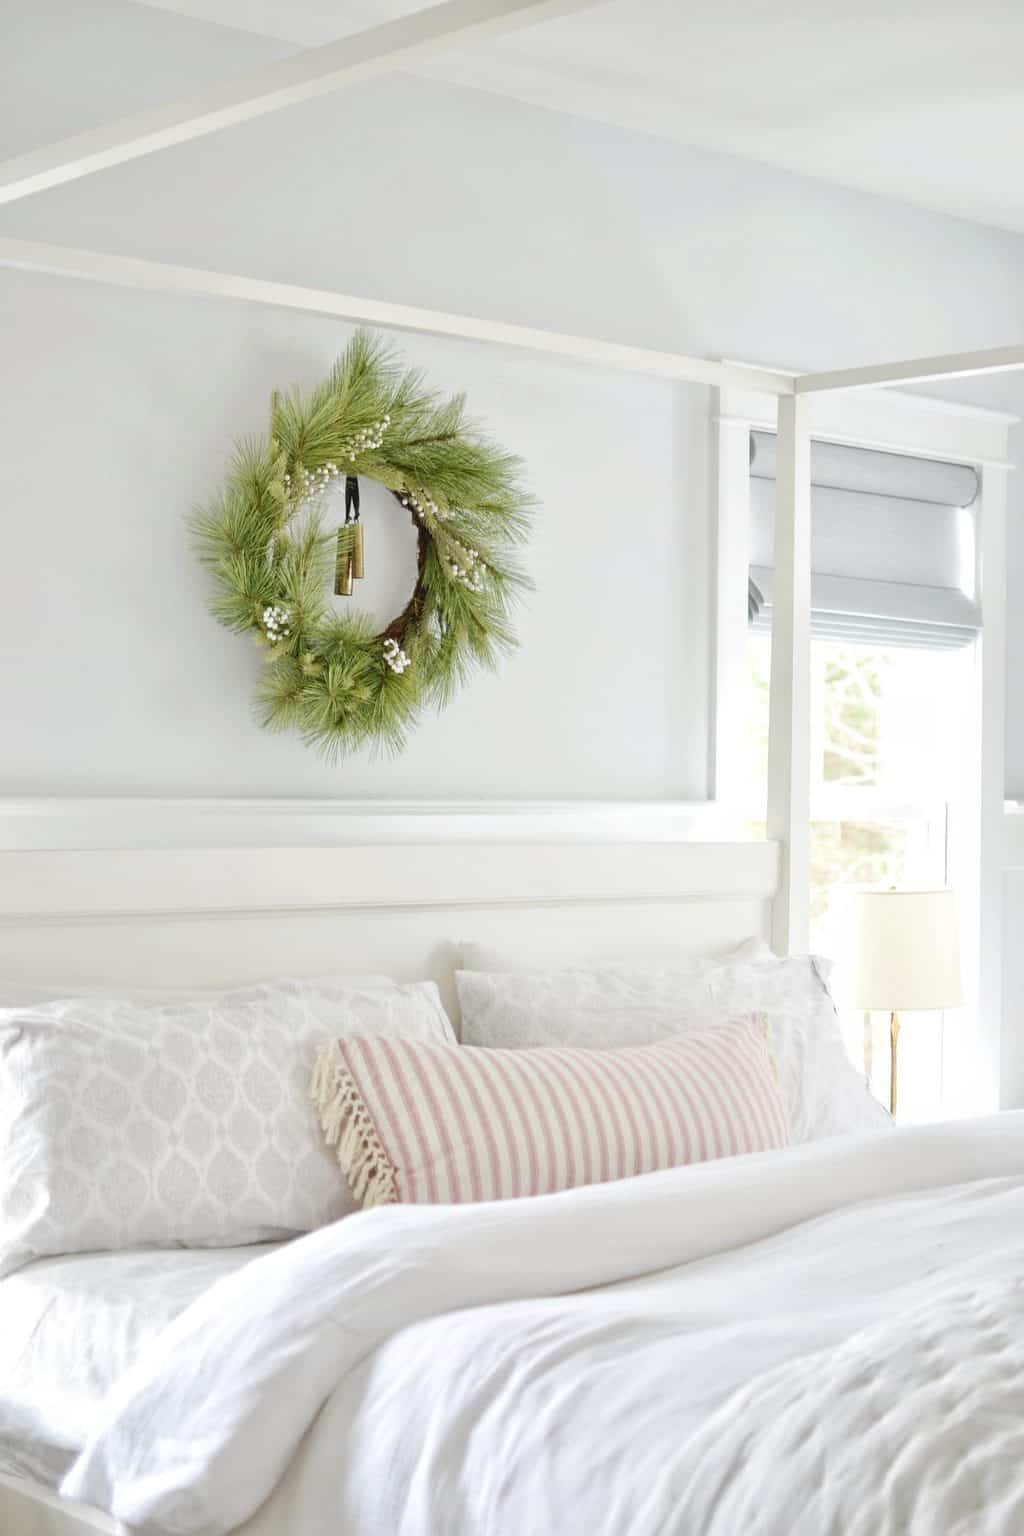 christmas wreath above bed in a bedroom